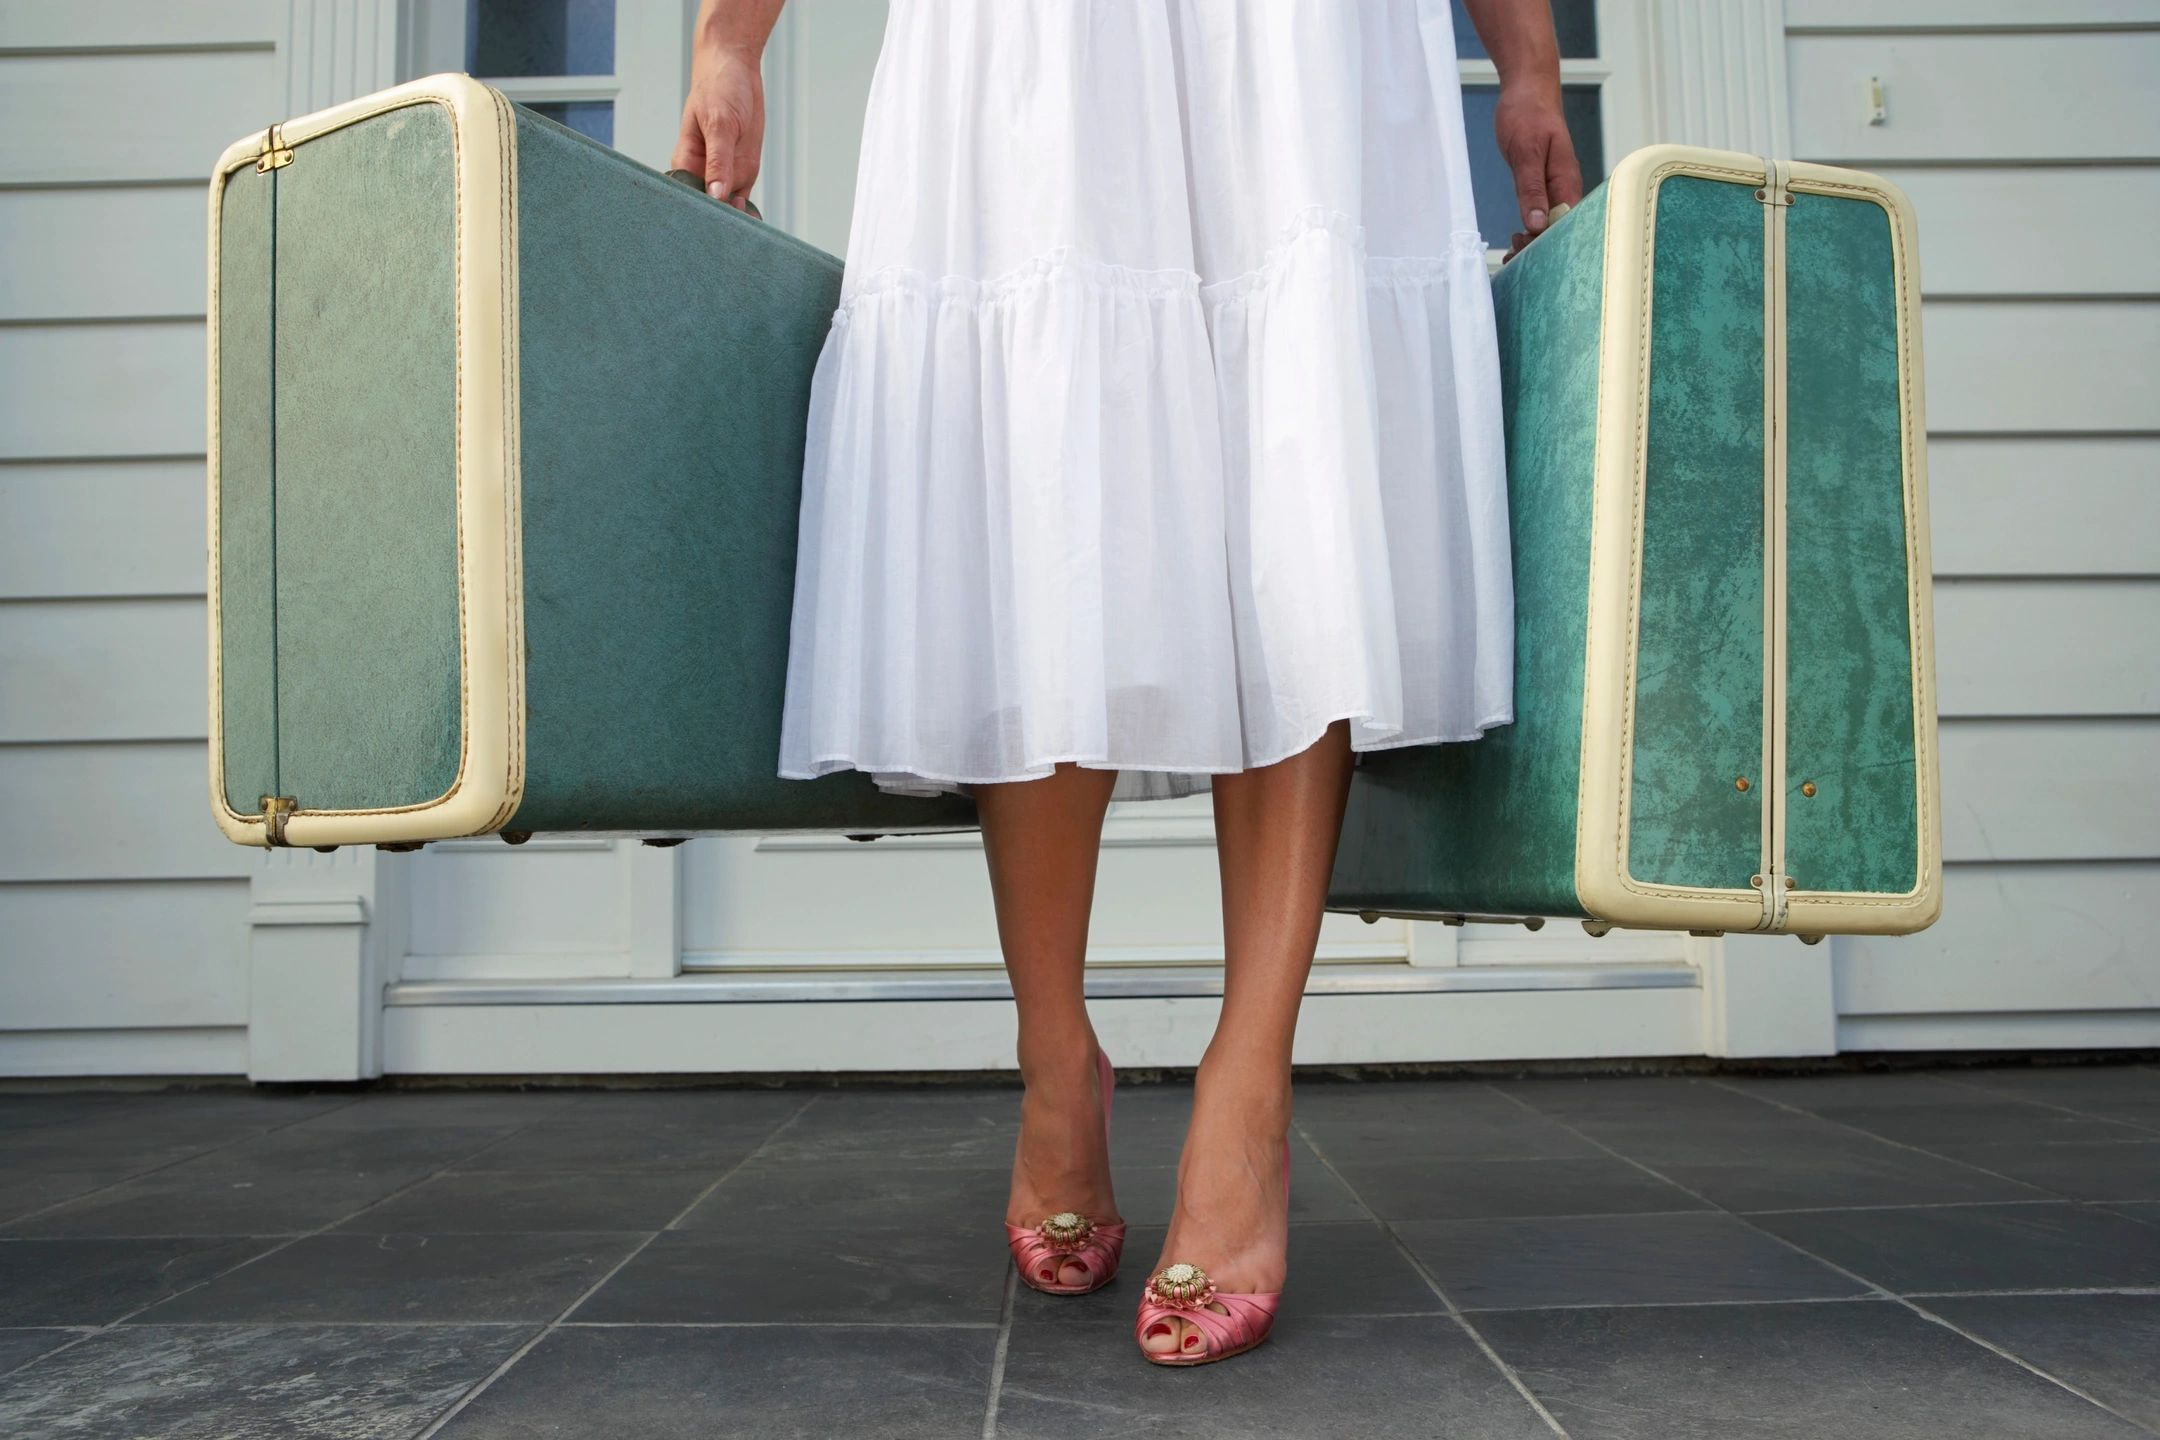 4 Important Tasks to Carry Out Before Going on Vacation